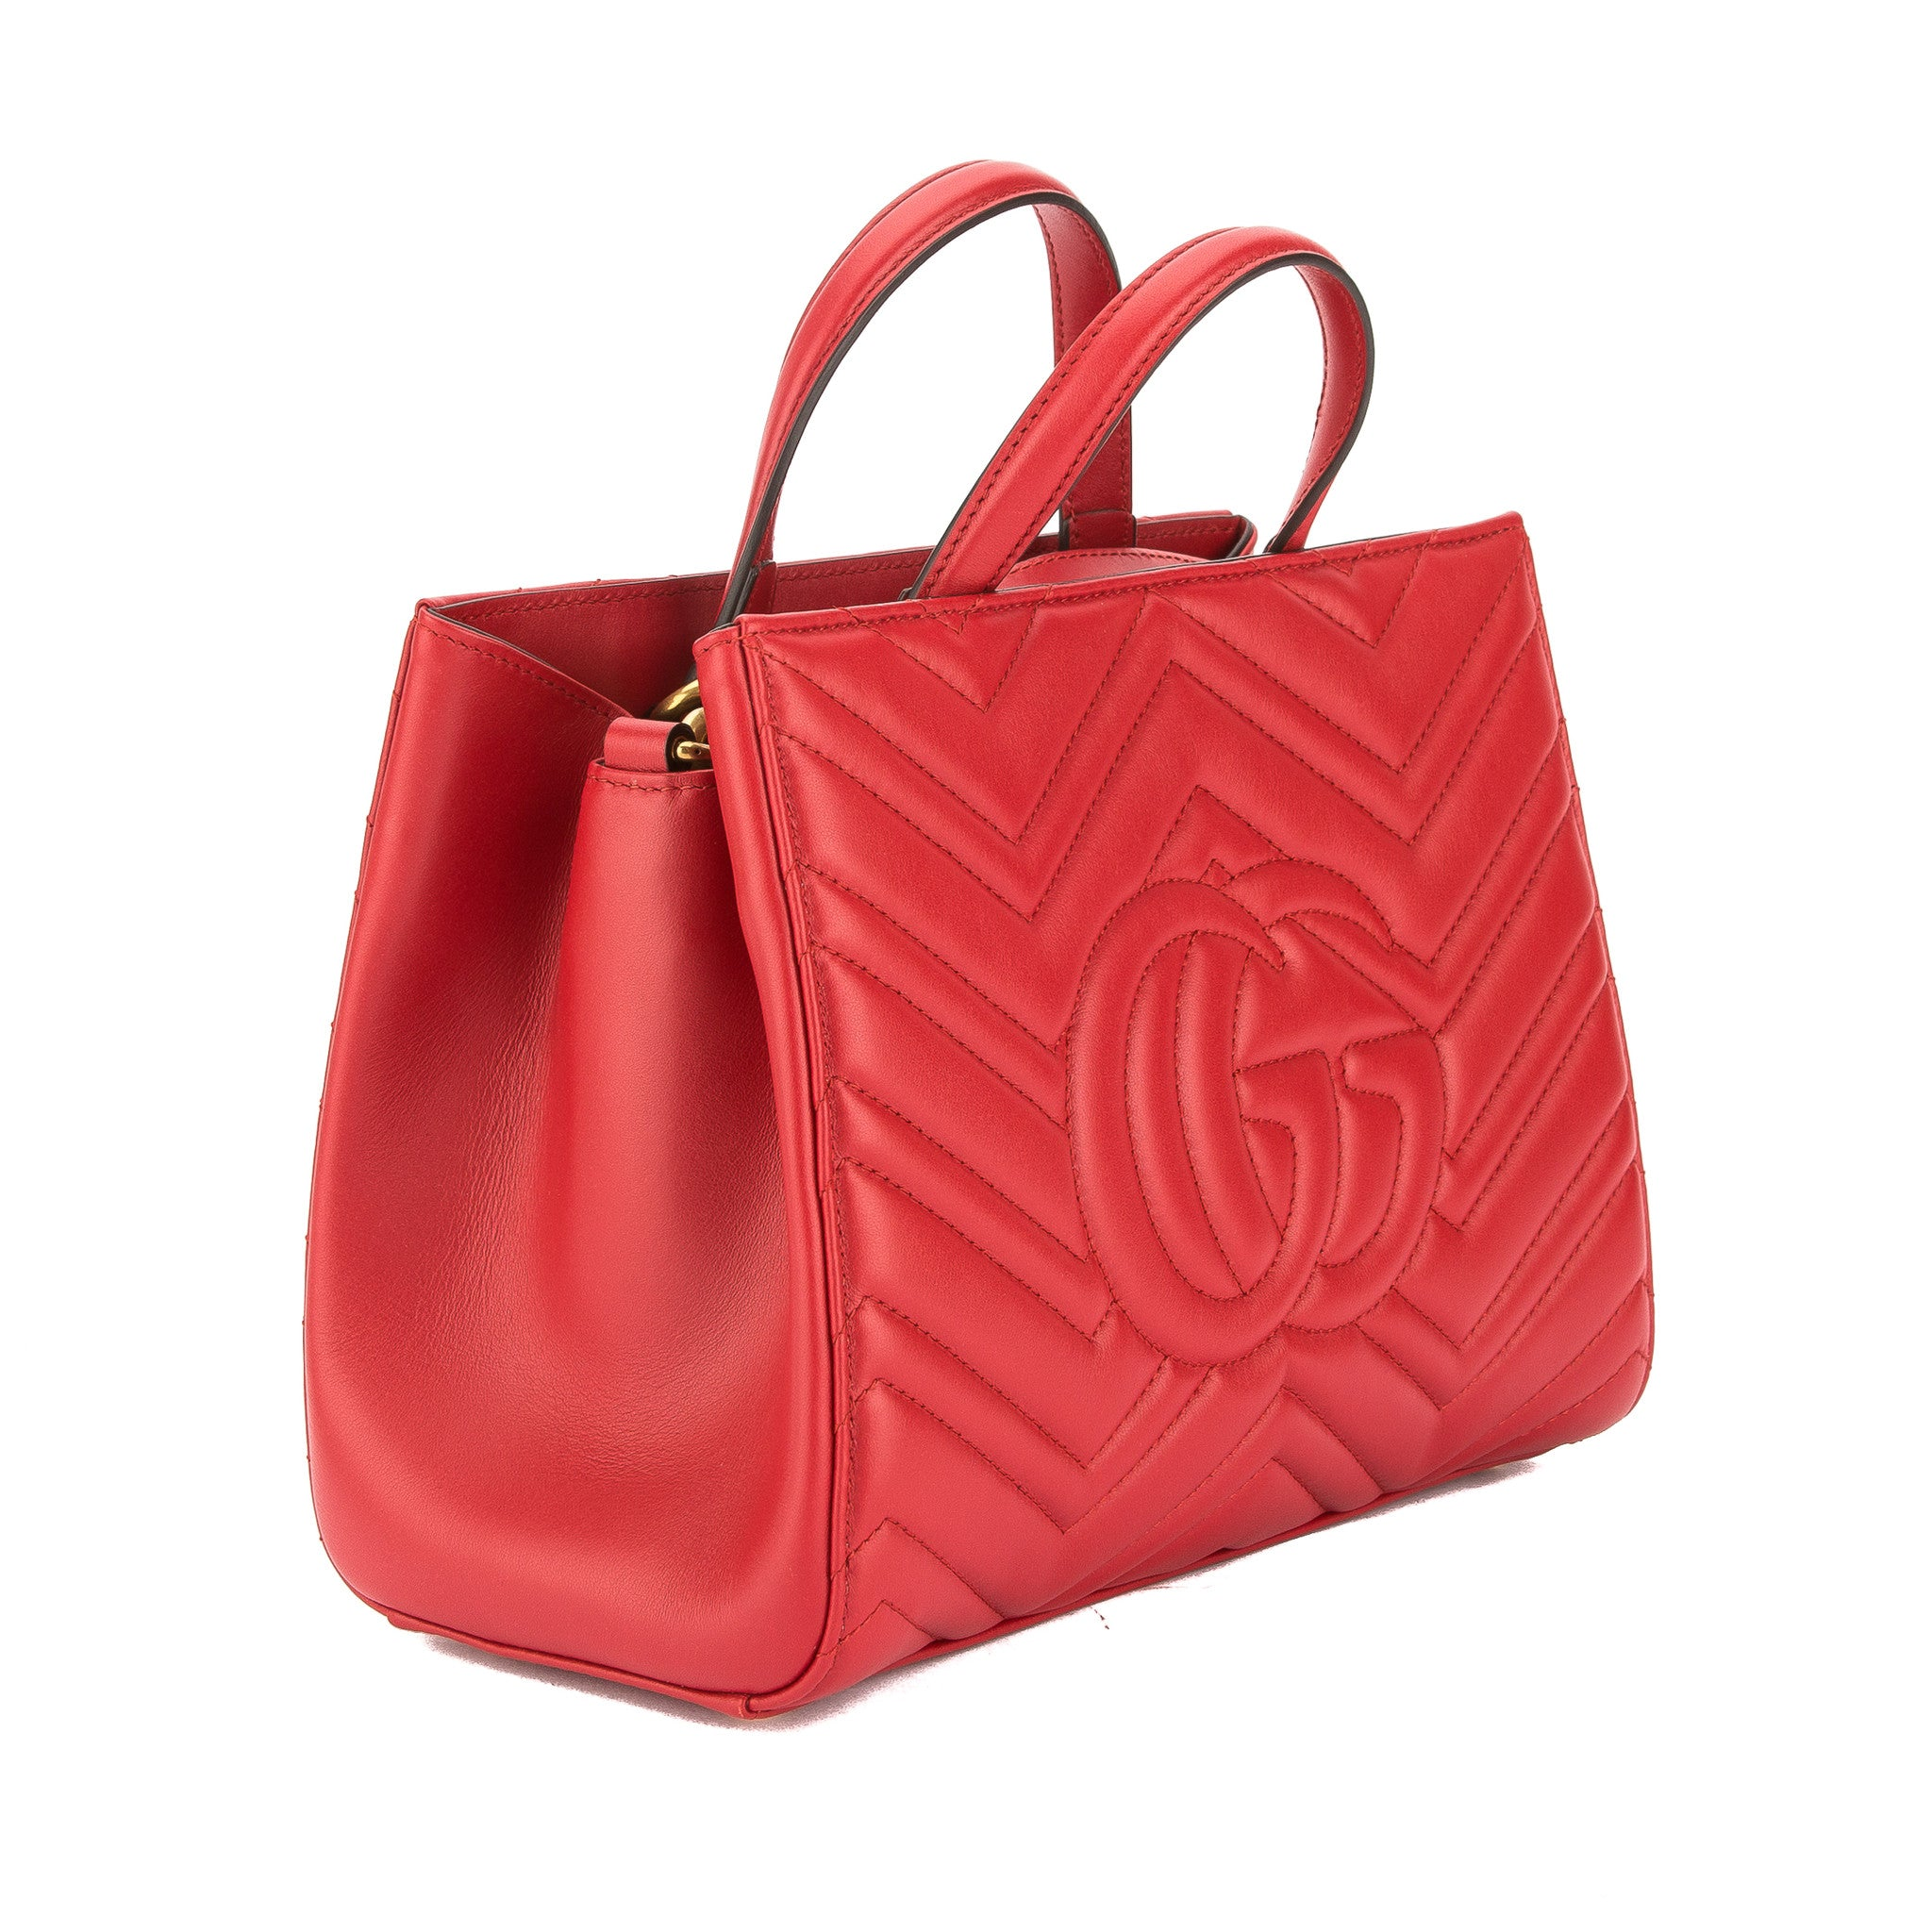 a8af0966f48 Gucci Hibiscus Red Leather GG Marmont Matelasse Small Top Handle Bag New  with Tags